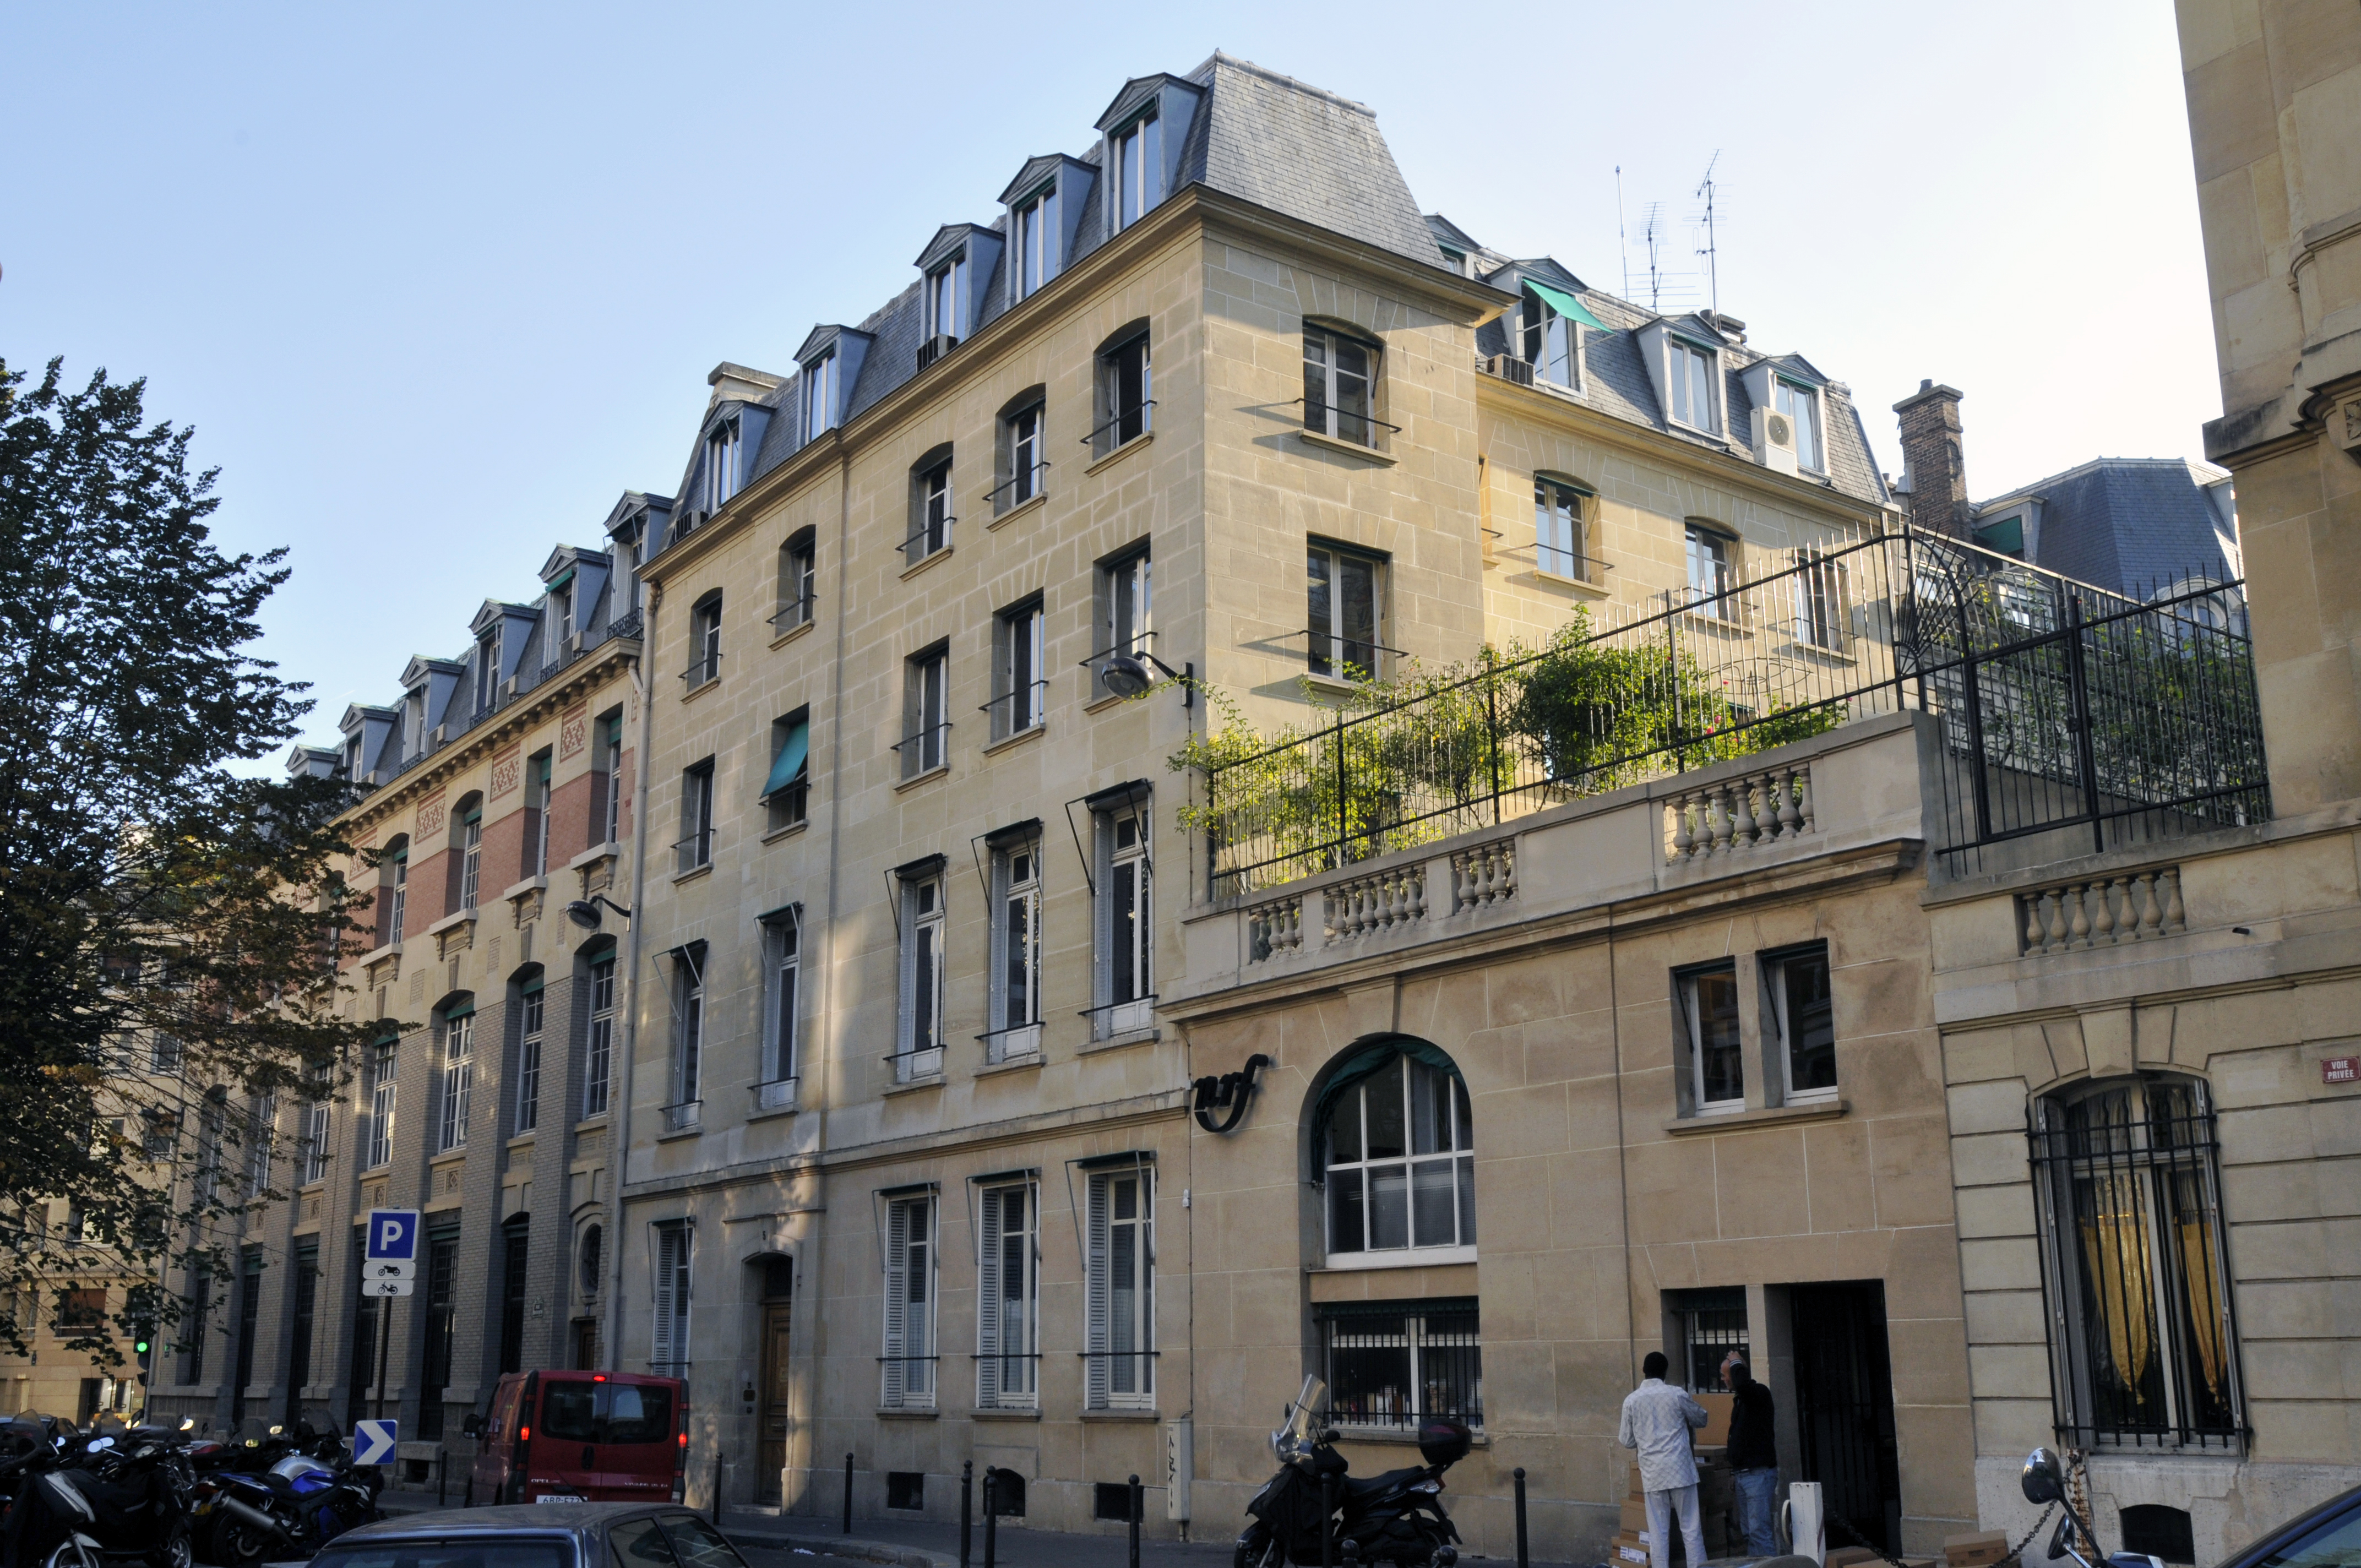 5 rue Gaston Gallimard, 75007 Paris[2] (1)